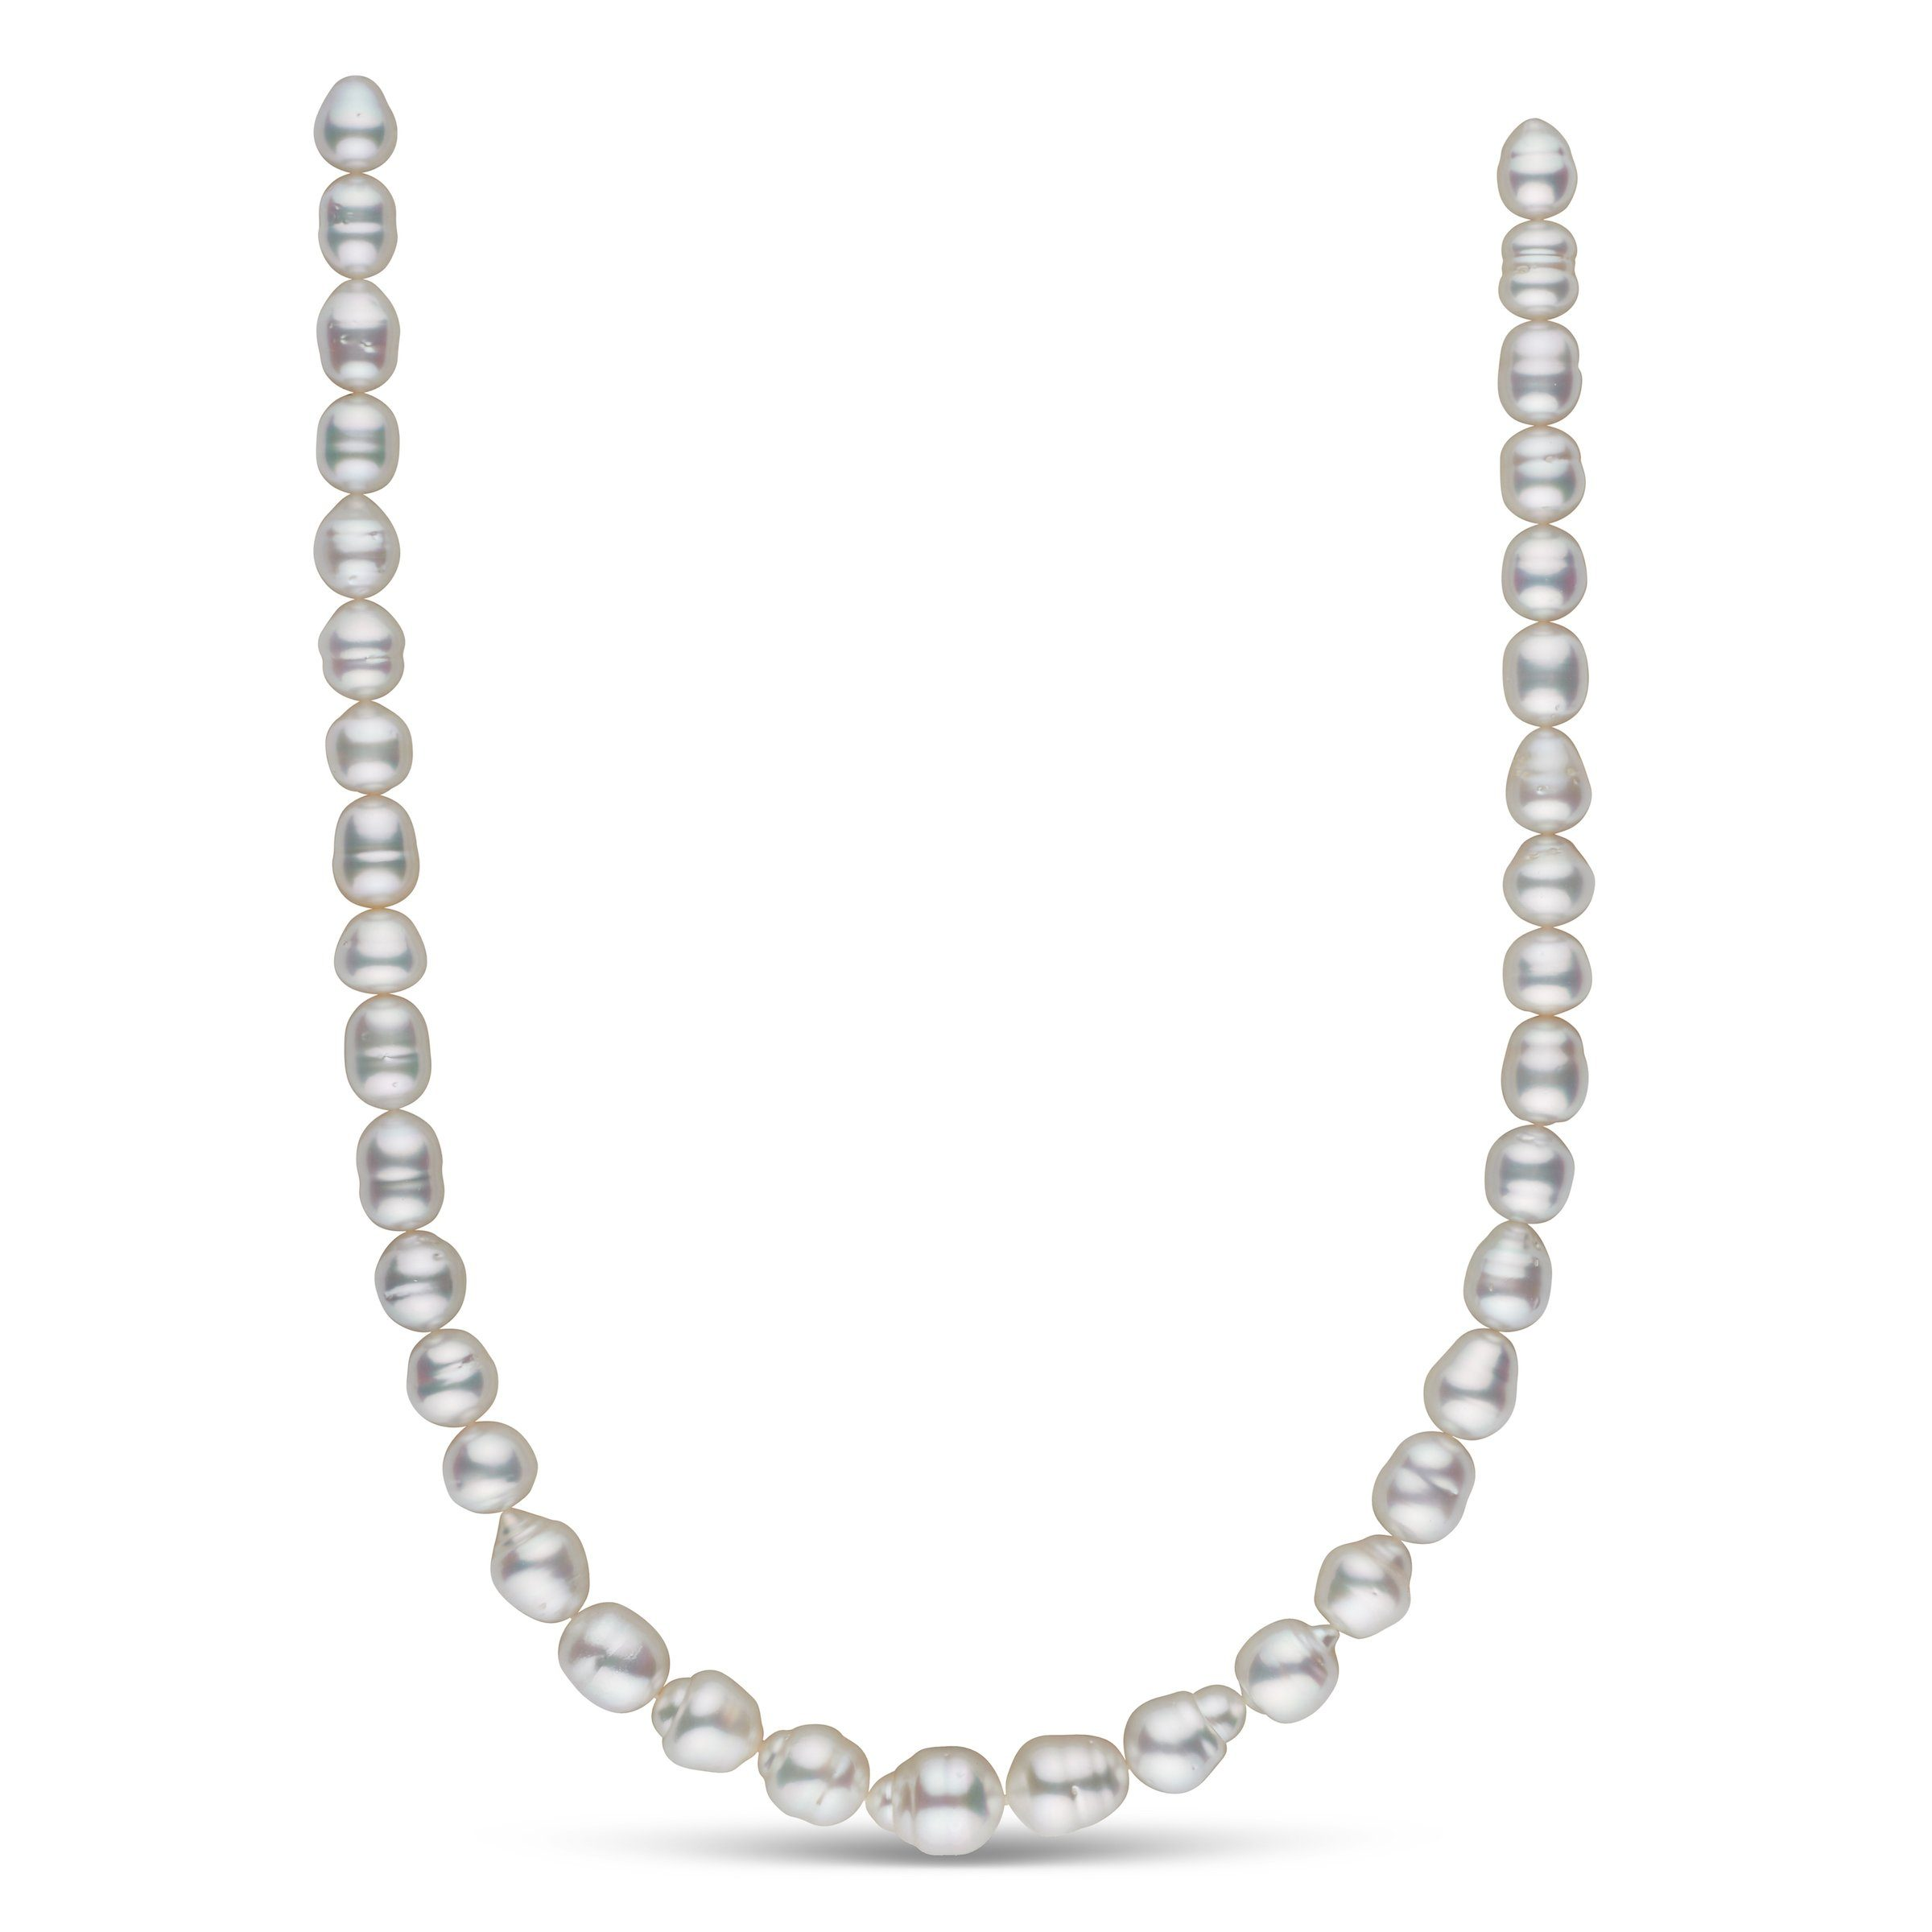 8.4-11.3 mm AA+/AAA White South Sea Baroque Necklace